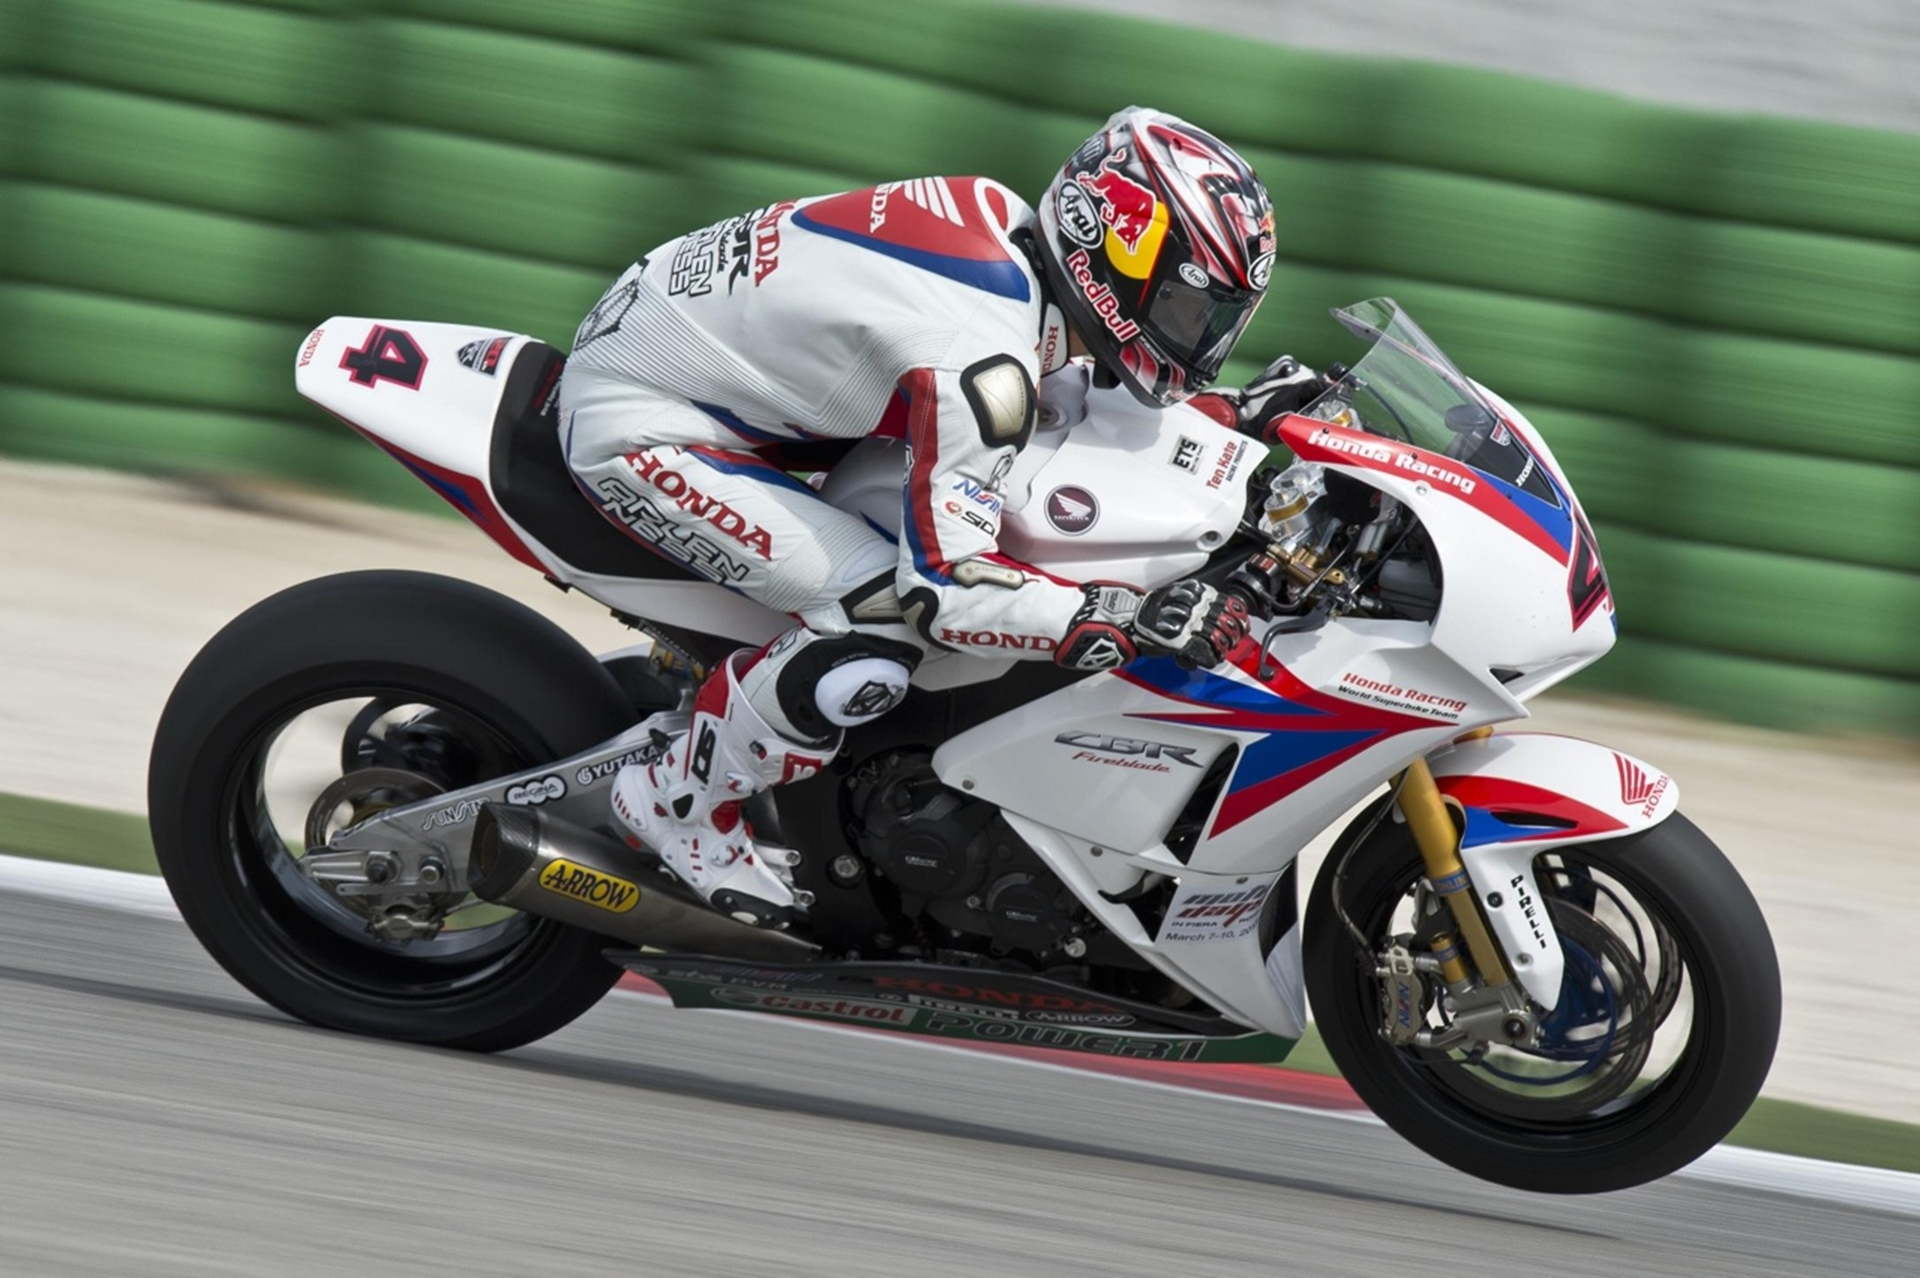 New Ideas On Deciding Upon Crucial Details Of How To Get Into Professional Motorcycle Racing